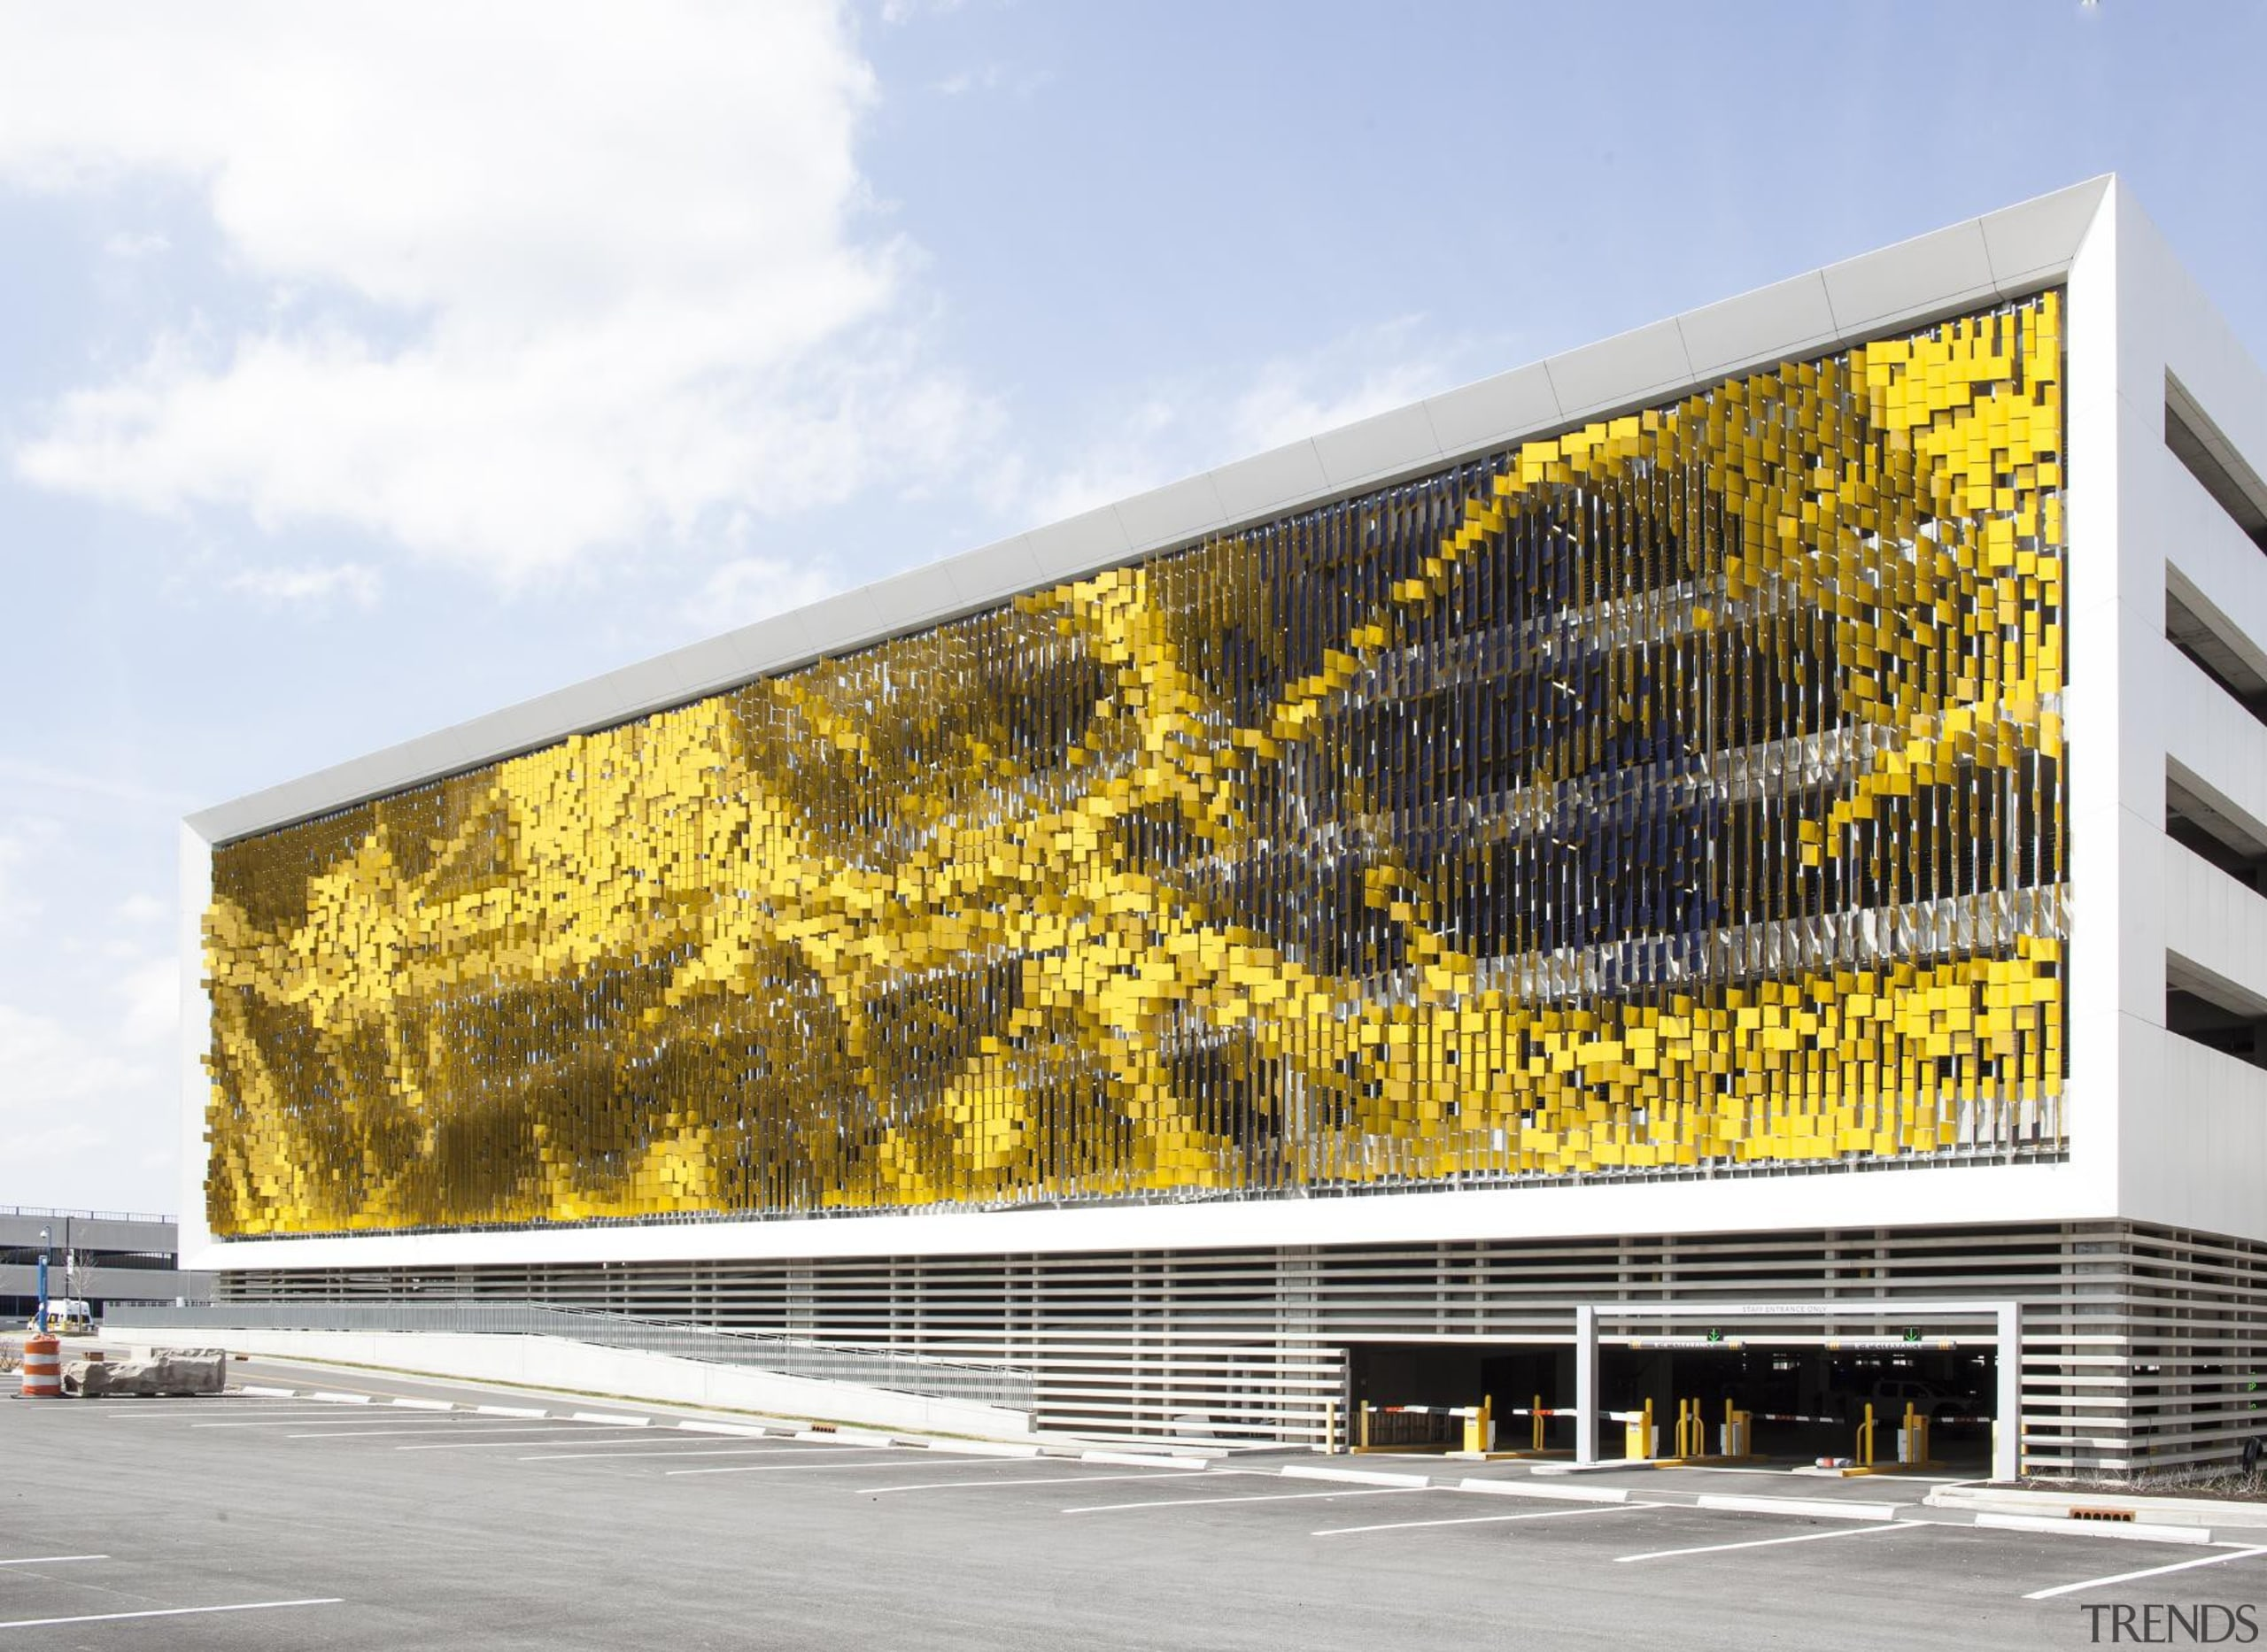 This display on the parking structure at Eskenazi architecture, building, corporate headquarters, facade, headquarters, mixed use, yellow, white